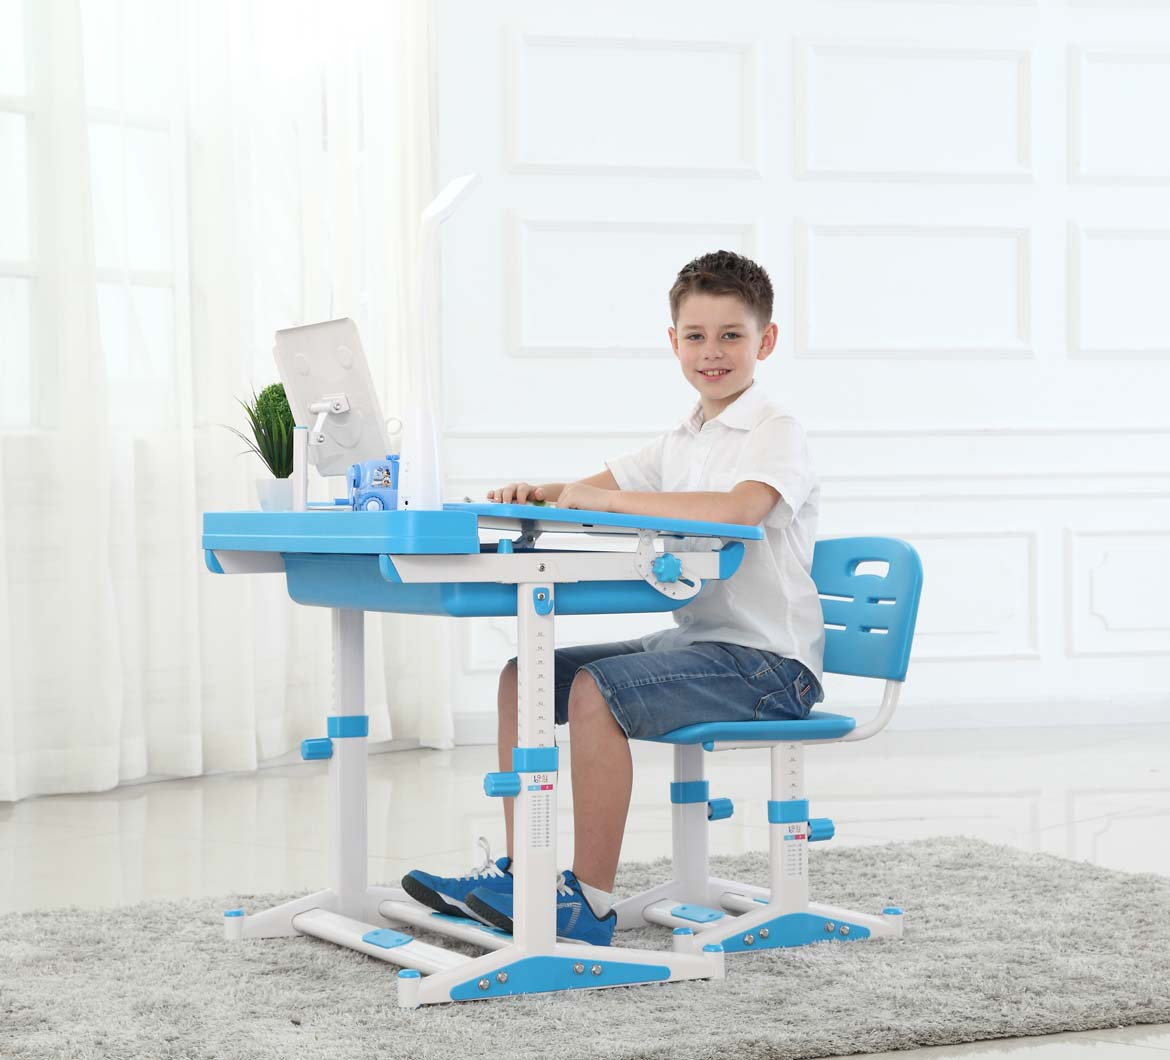 ergonomic-kids-desk-chair-study-table-blue-desk-for-boys-portfolio-sprite-blue-desk-2